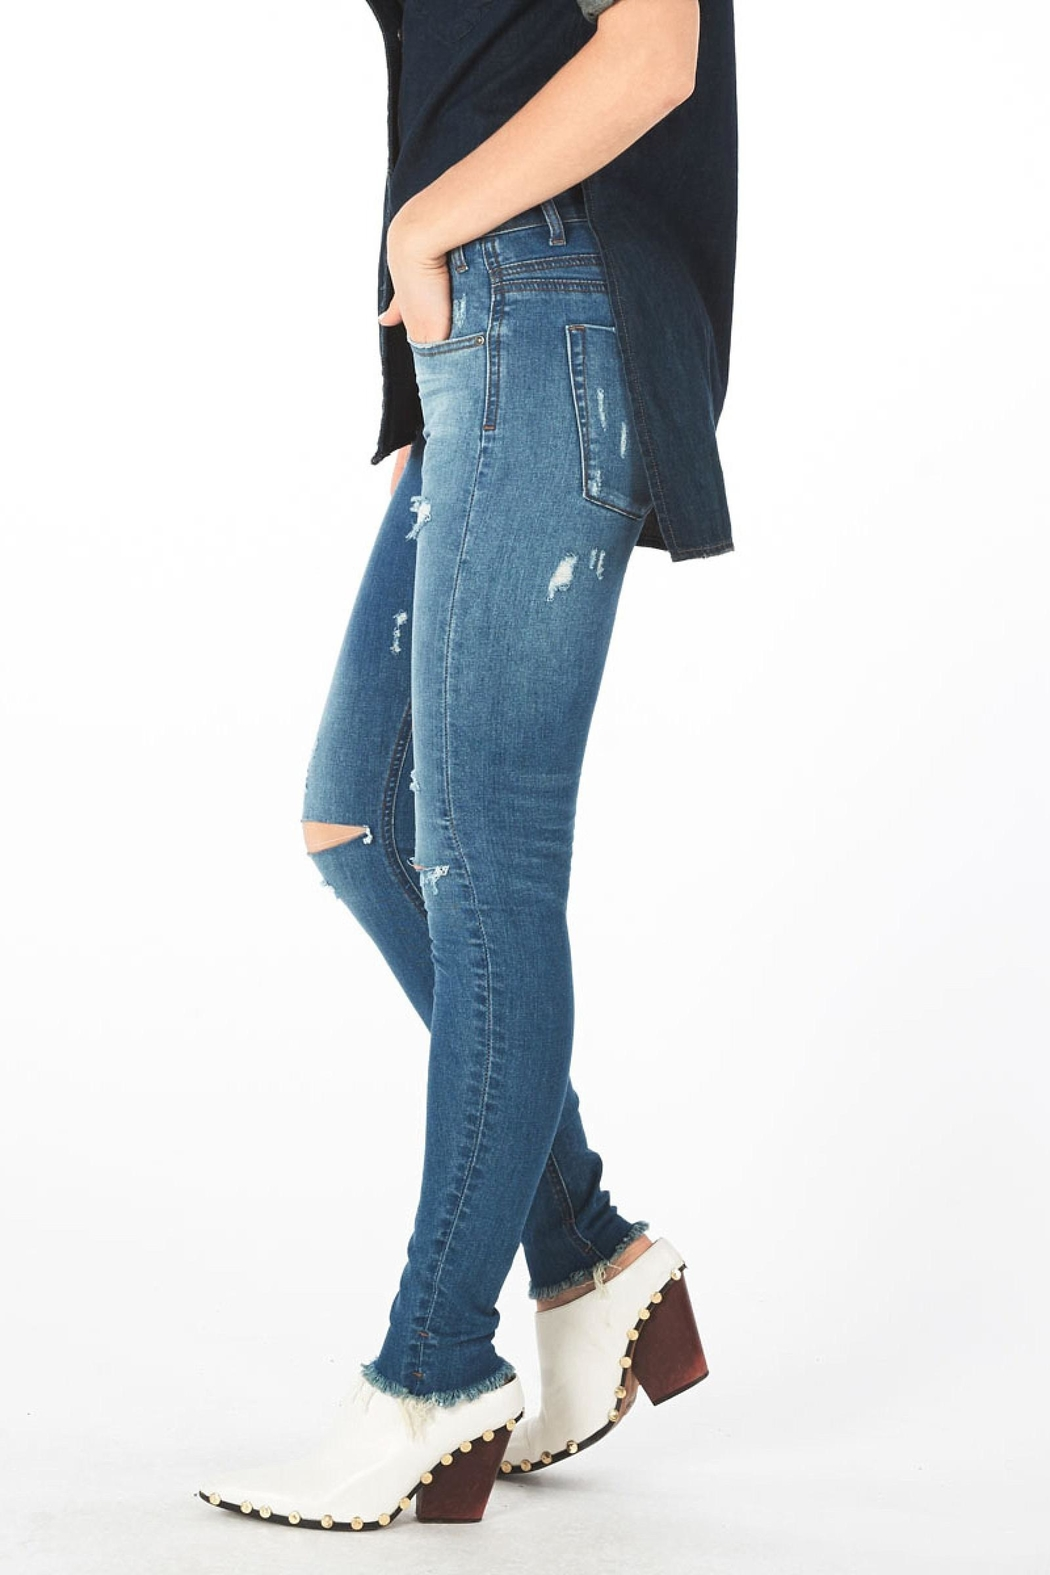 One Teaspoon Hoodlums Skinny Jean - Side Cropped Image